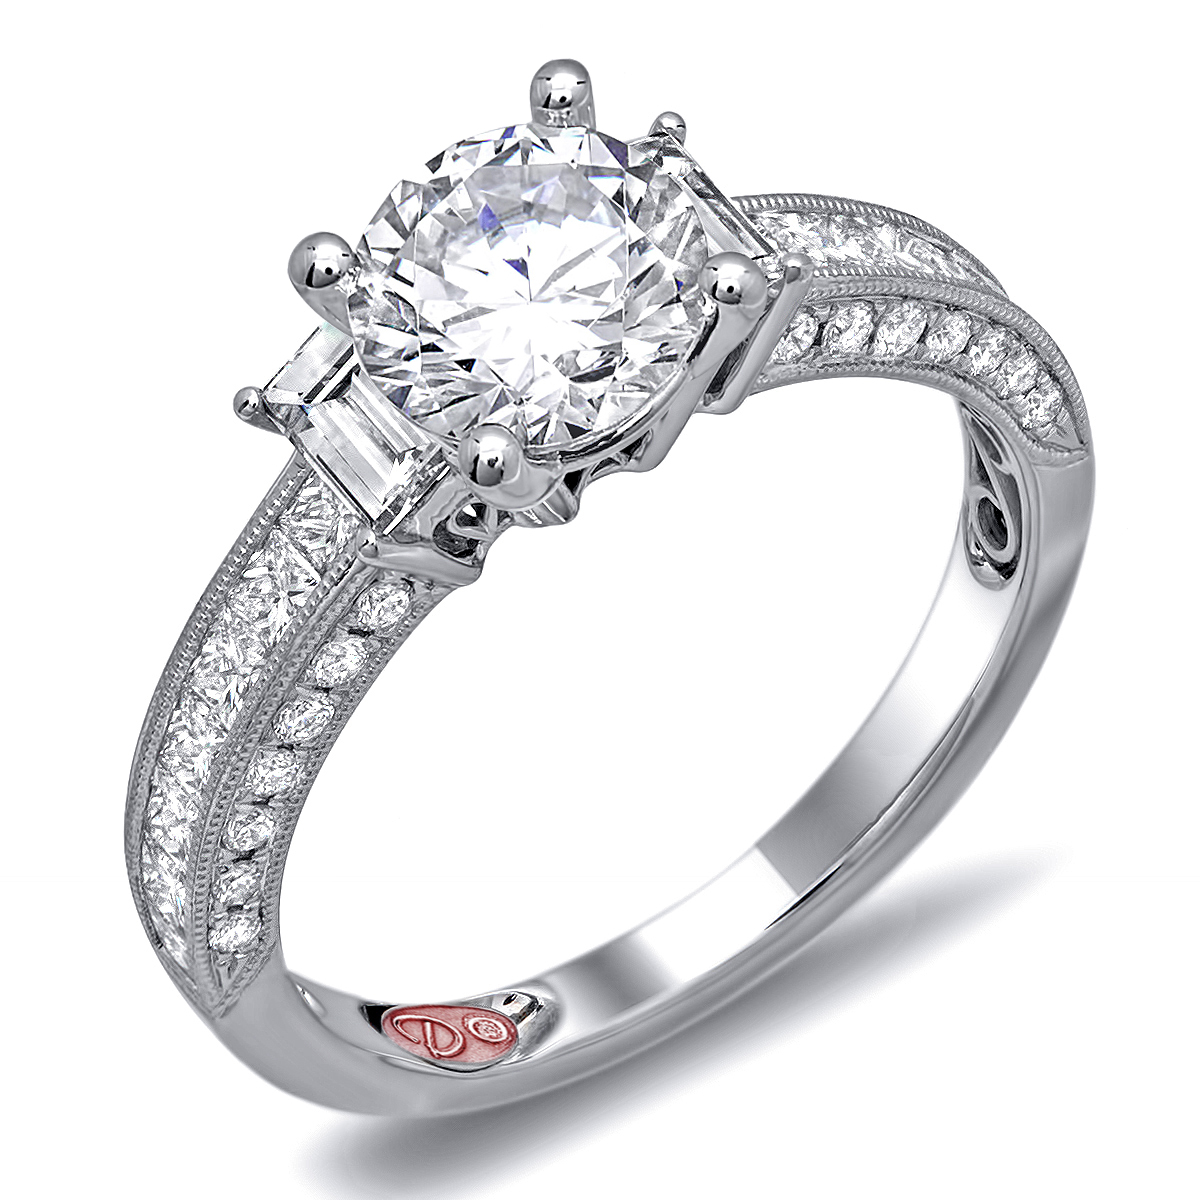 Demarco Bridal Jewelry Official Blog | Designer Engagement Rings